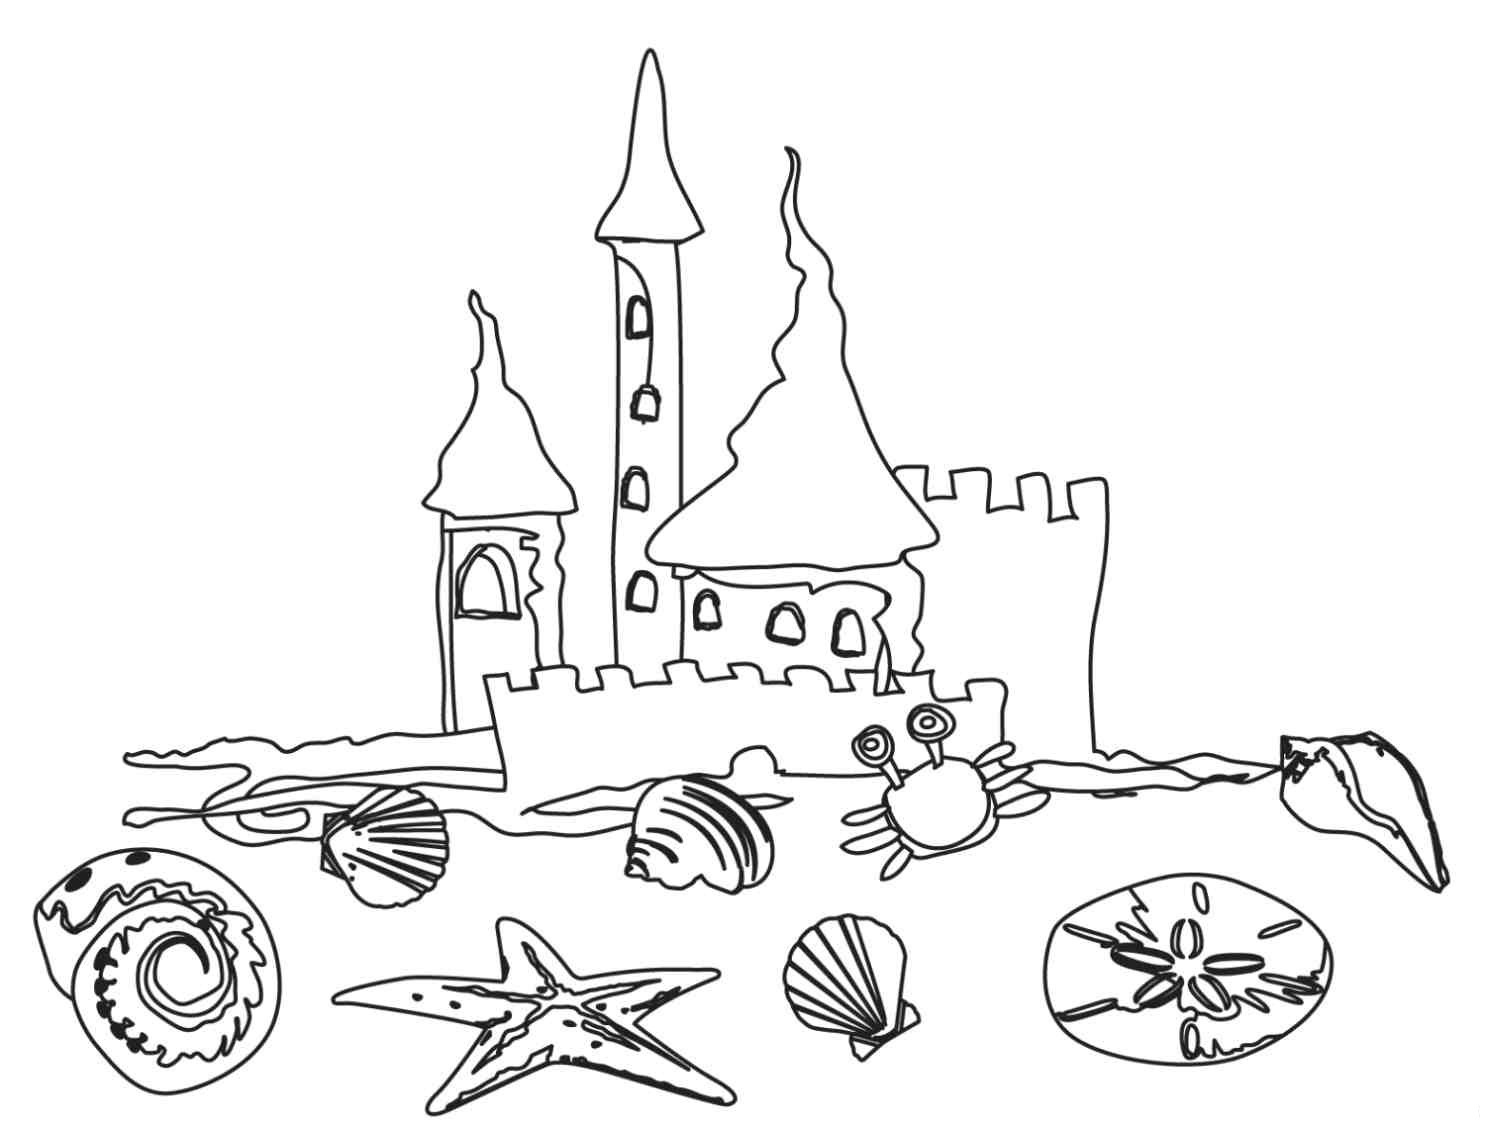 beach picture for coloring beach coloring pages beach scenes activities picture coloring beach for